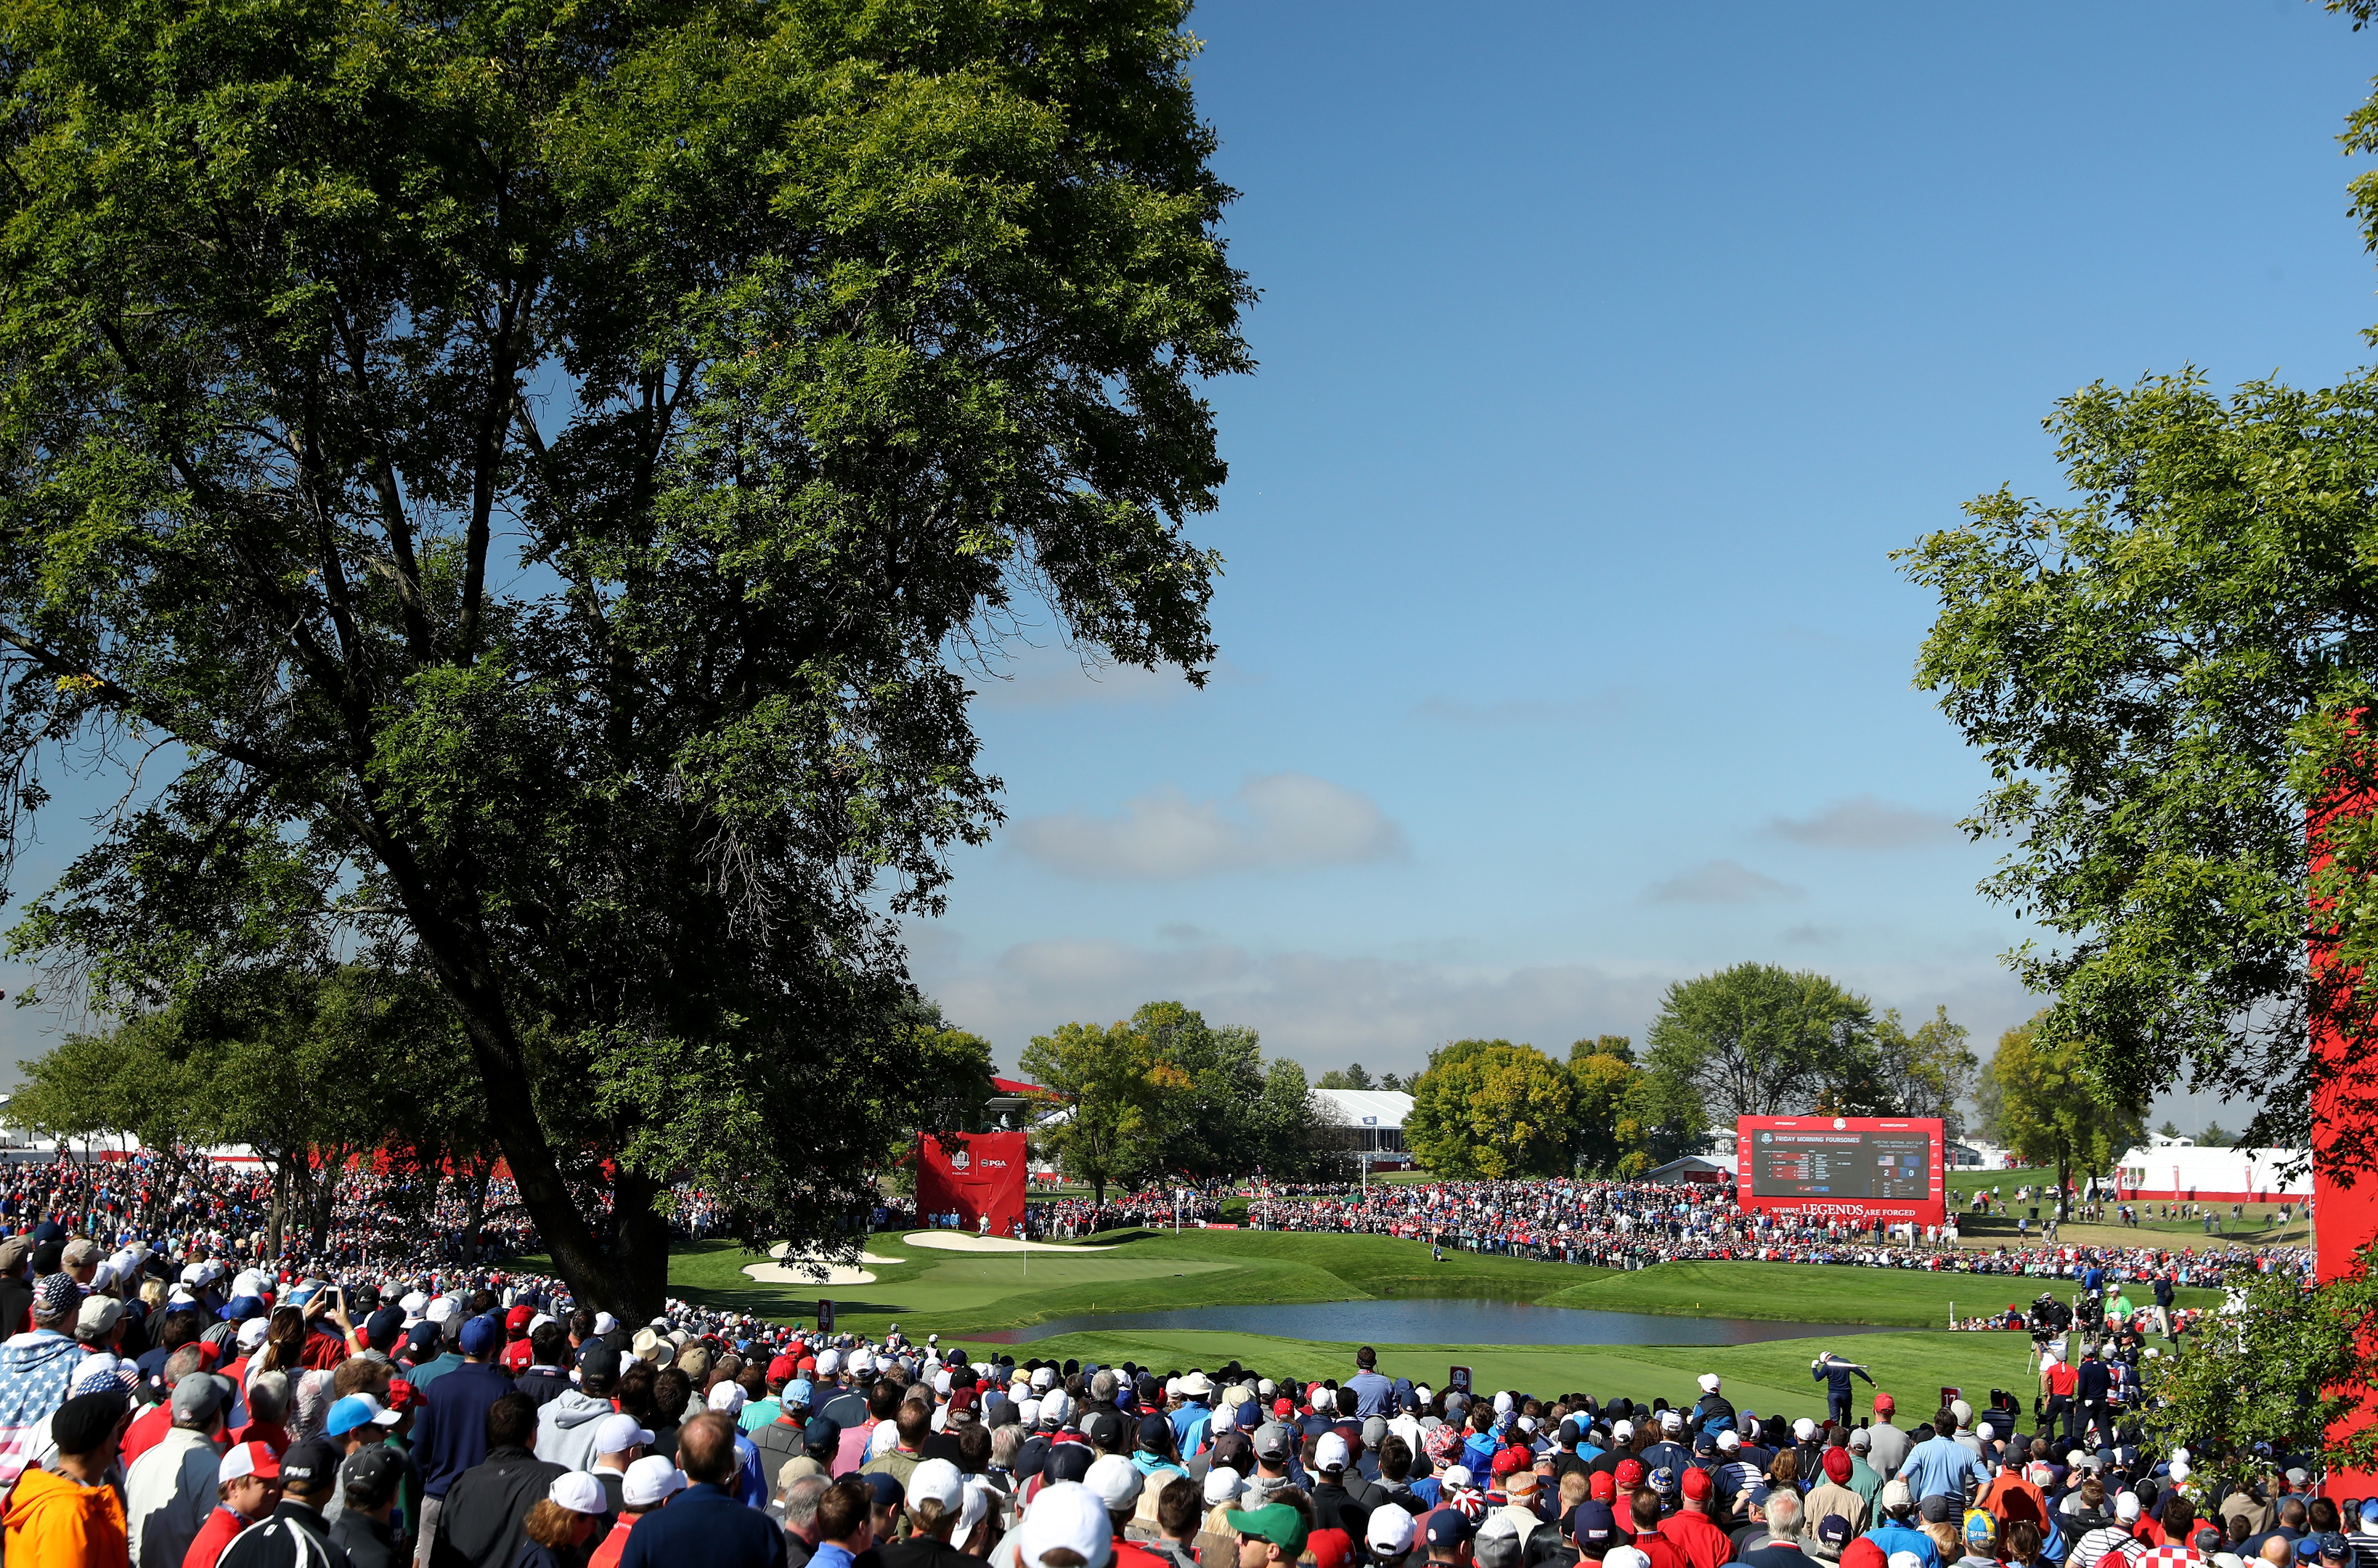 Huge crowds saw the USA dominate the opening morning of the 2016 Ryder Cup